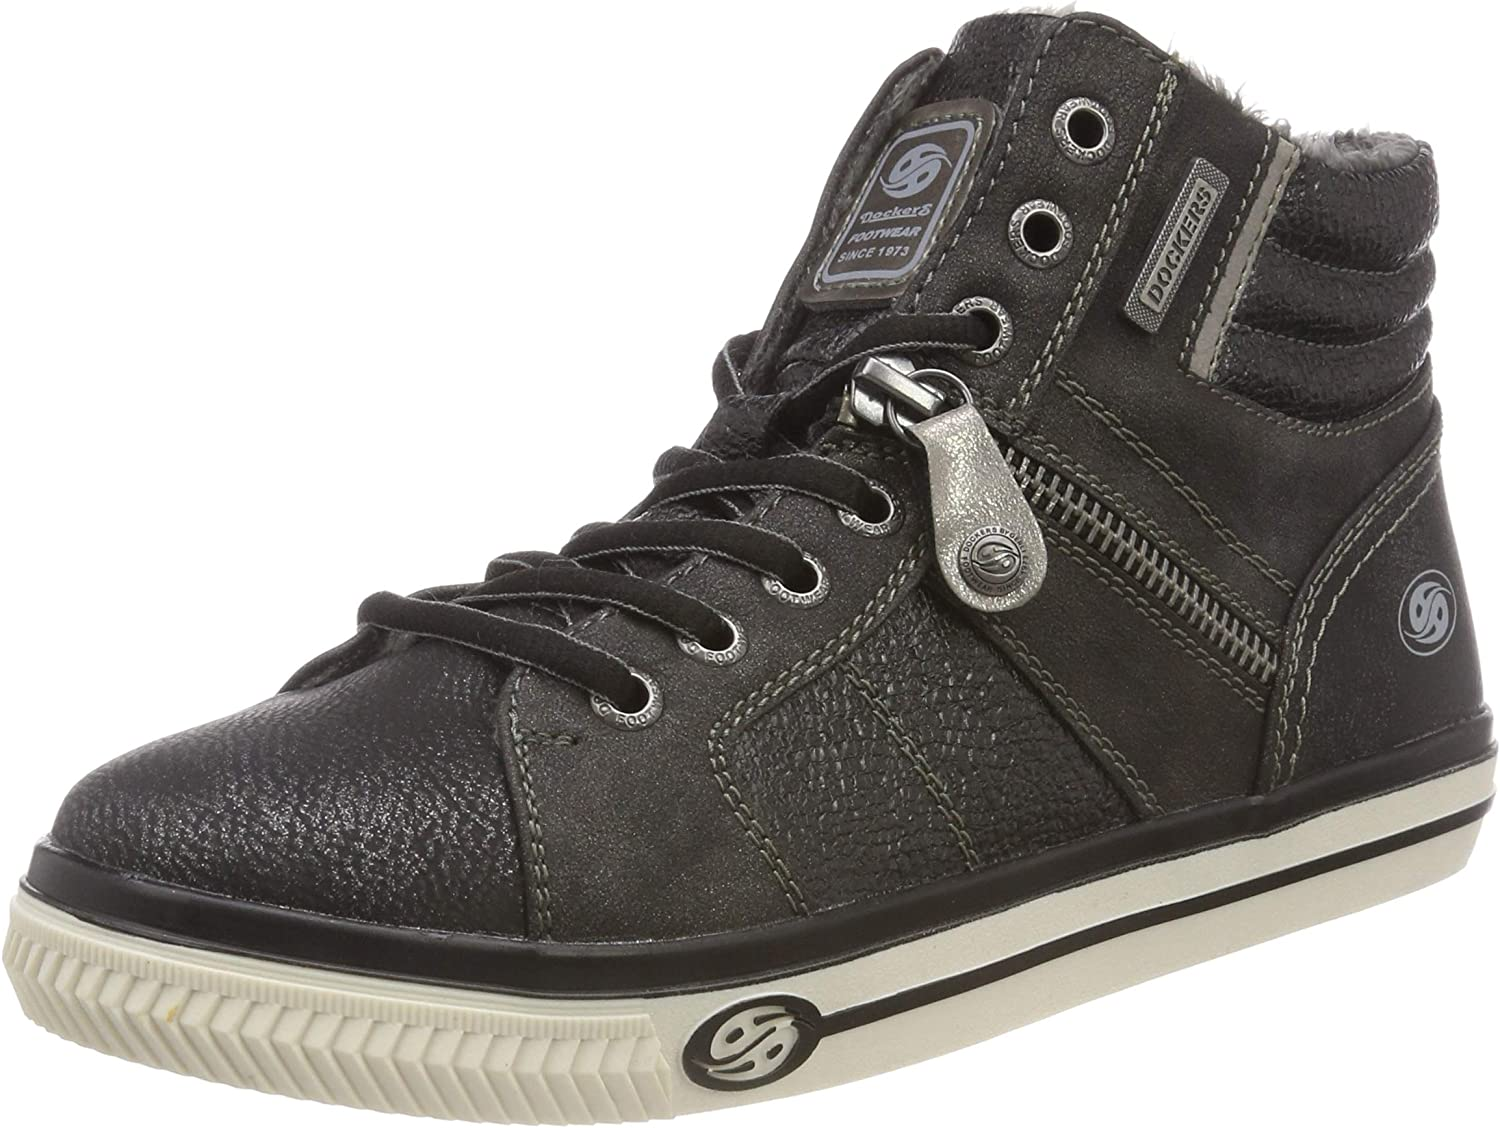 Dockers by Gerli Women's 43am306 Hi-Top Trainers